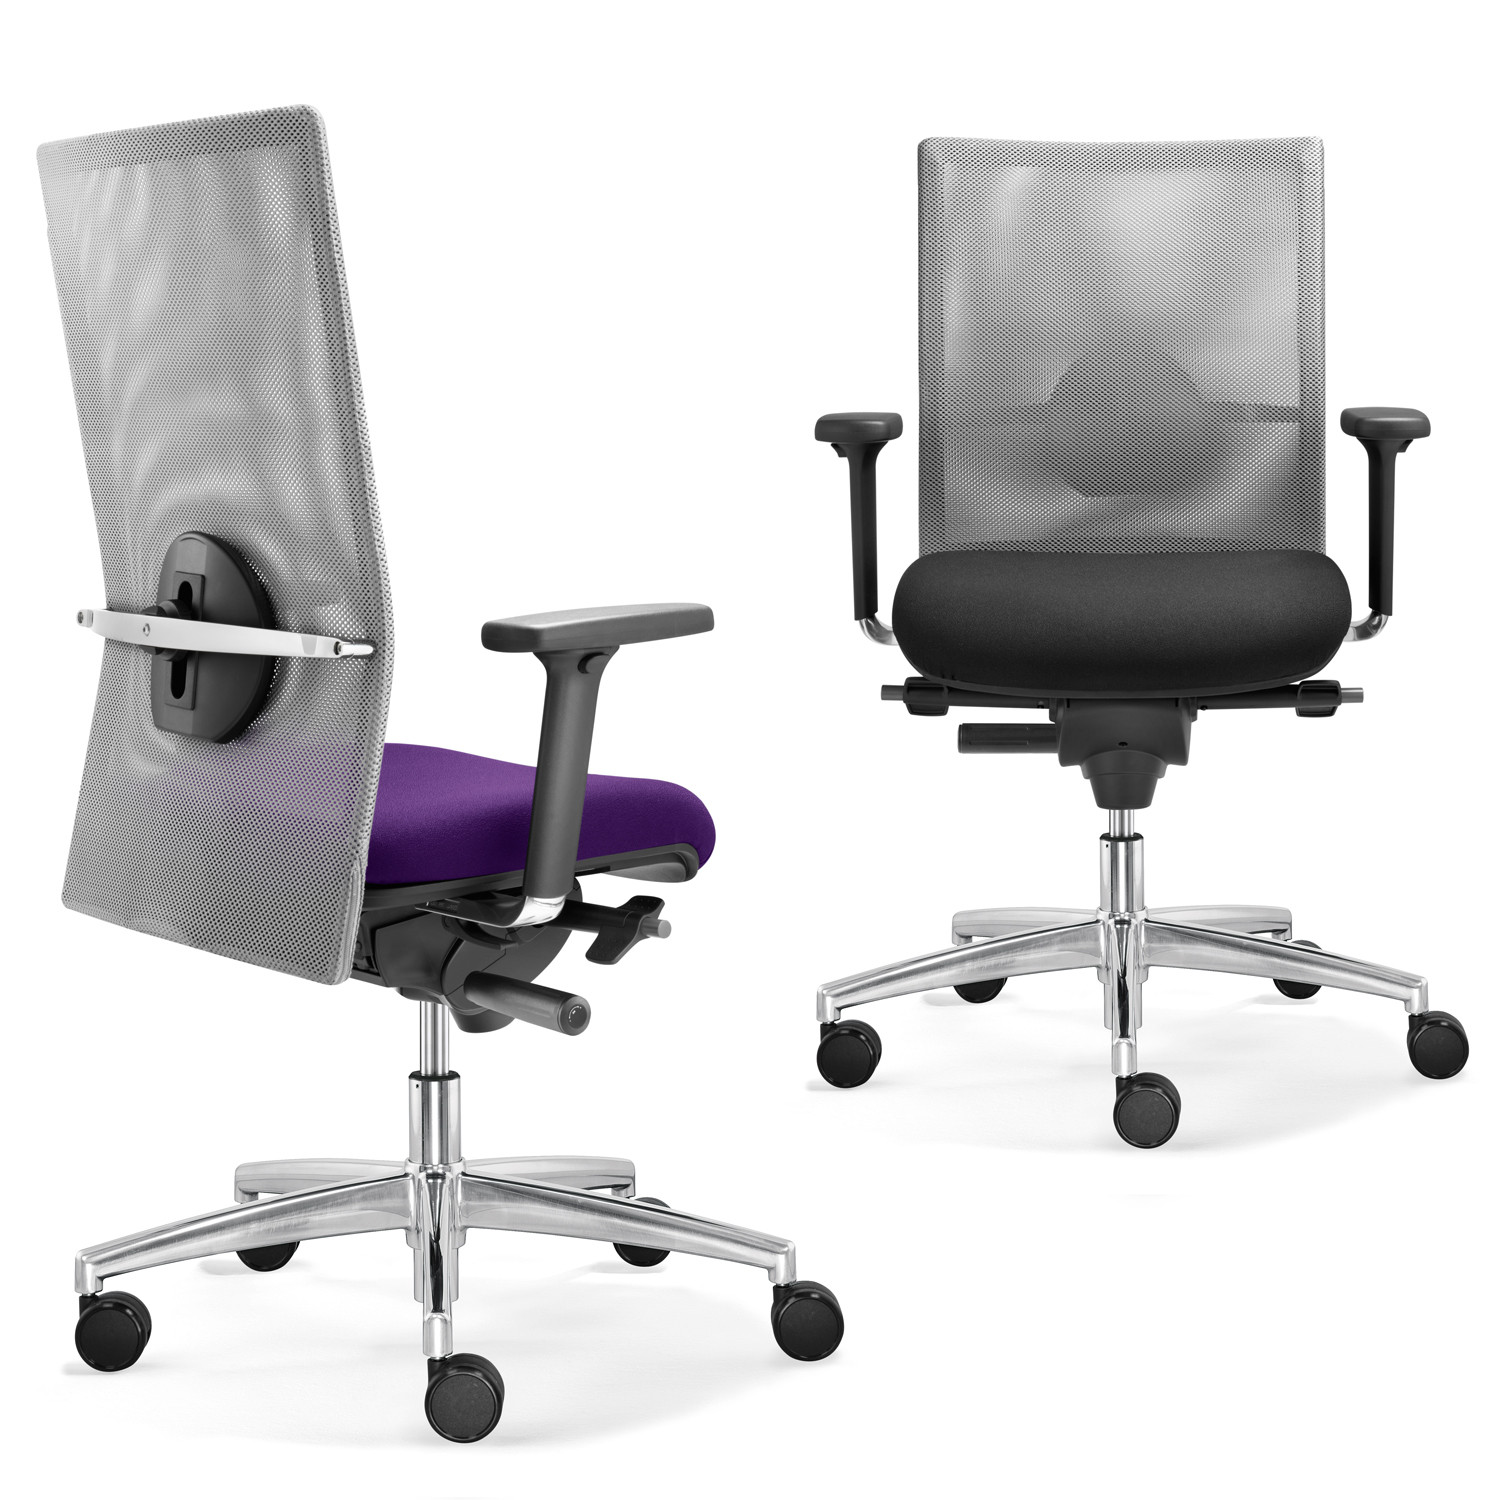 Sim-O Mesh Chairs from Dauphin Office